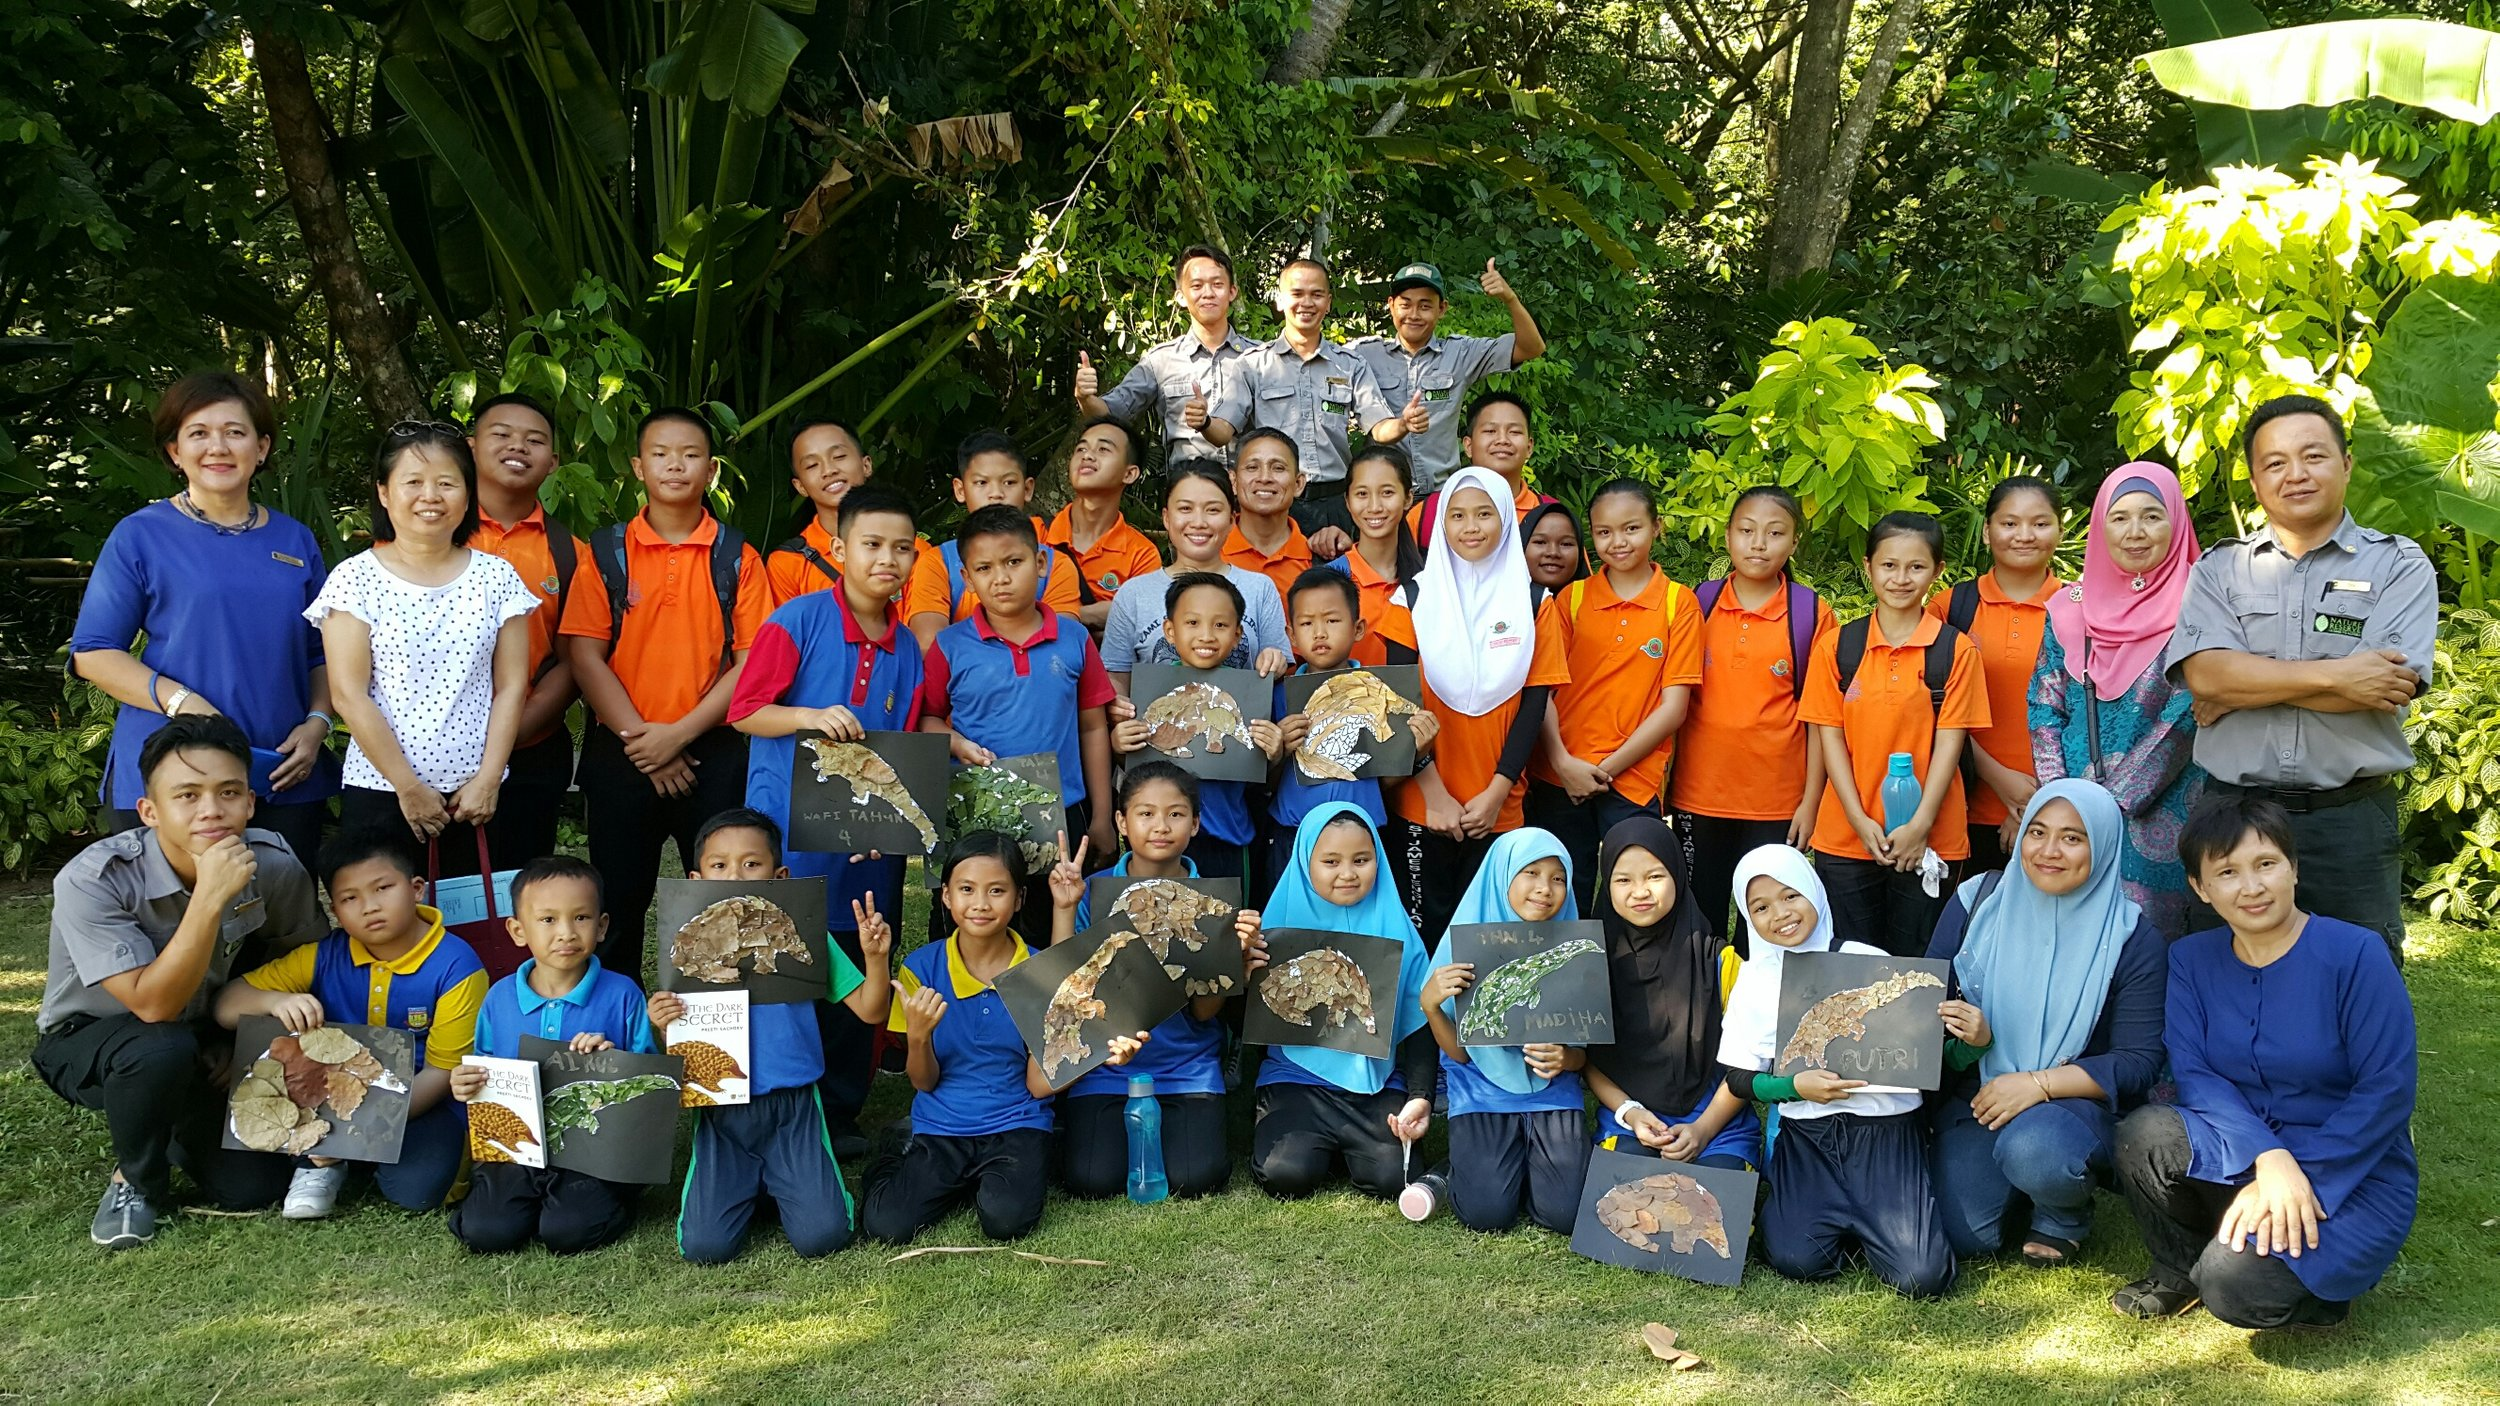 School group collage WPD Sabah_Elisa Panjang.jpg